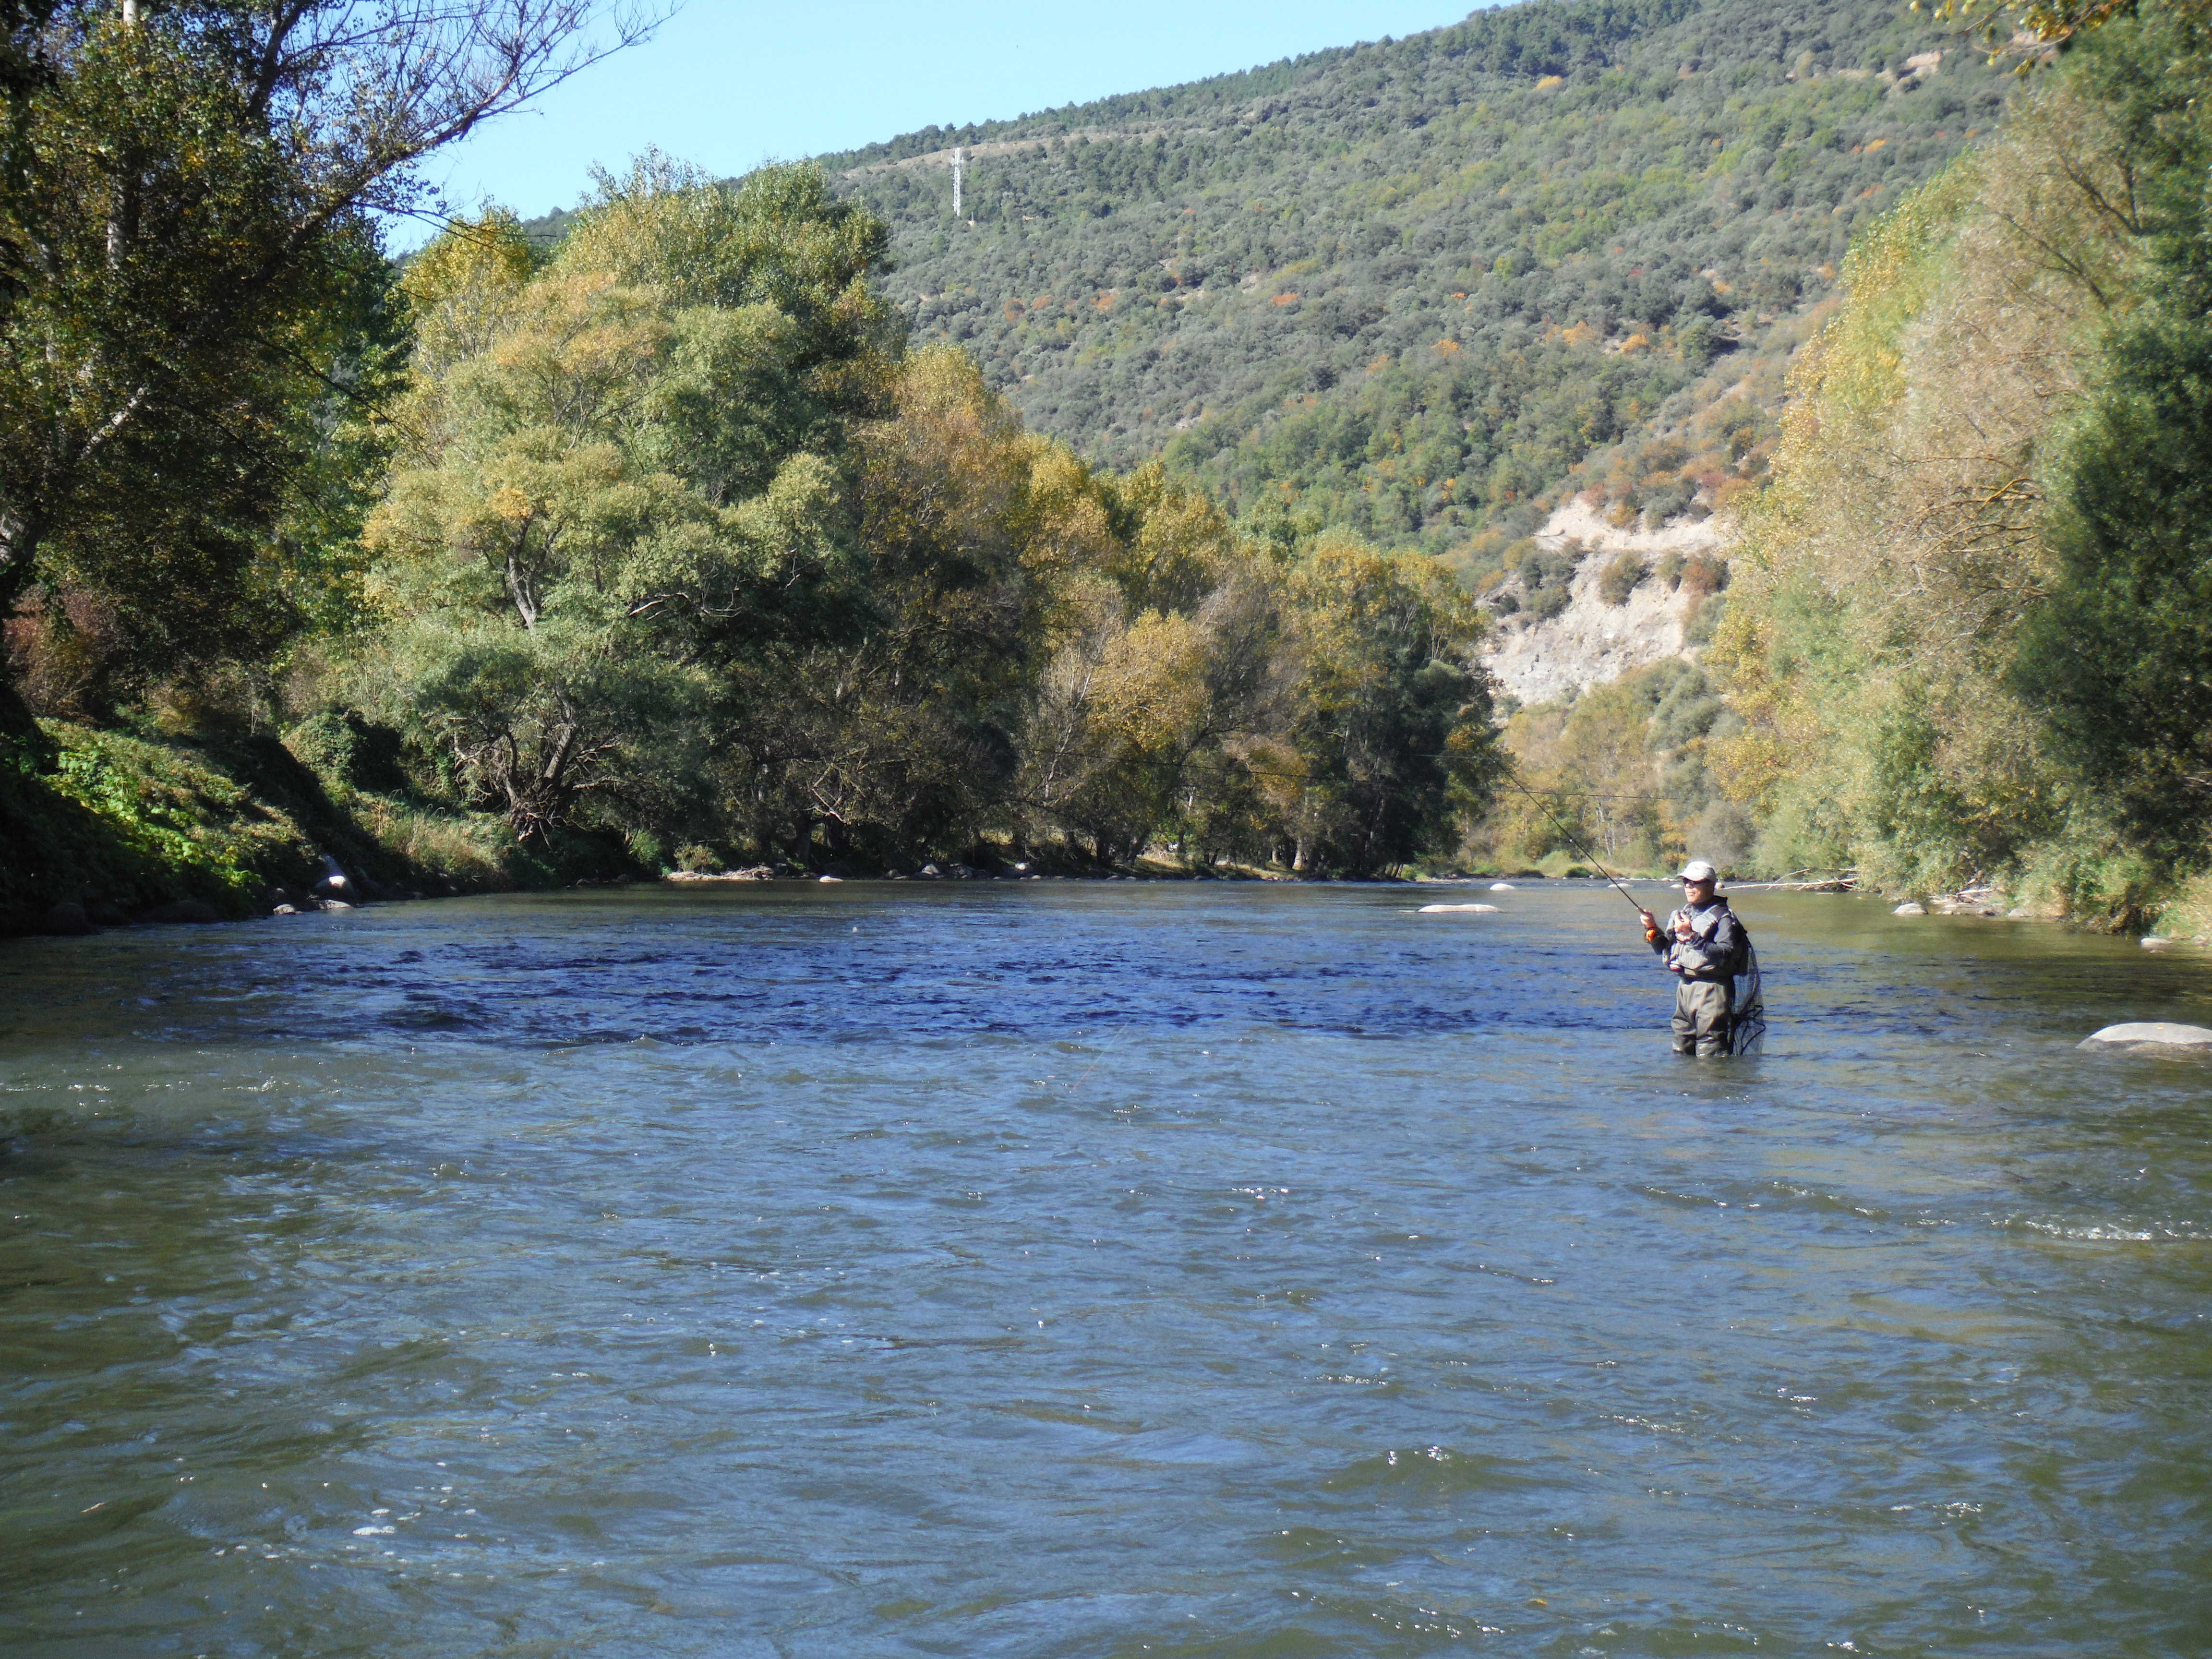 Carles viv fly fishing guide pyrenees top river for Best fly fishing